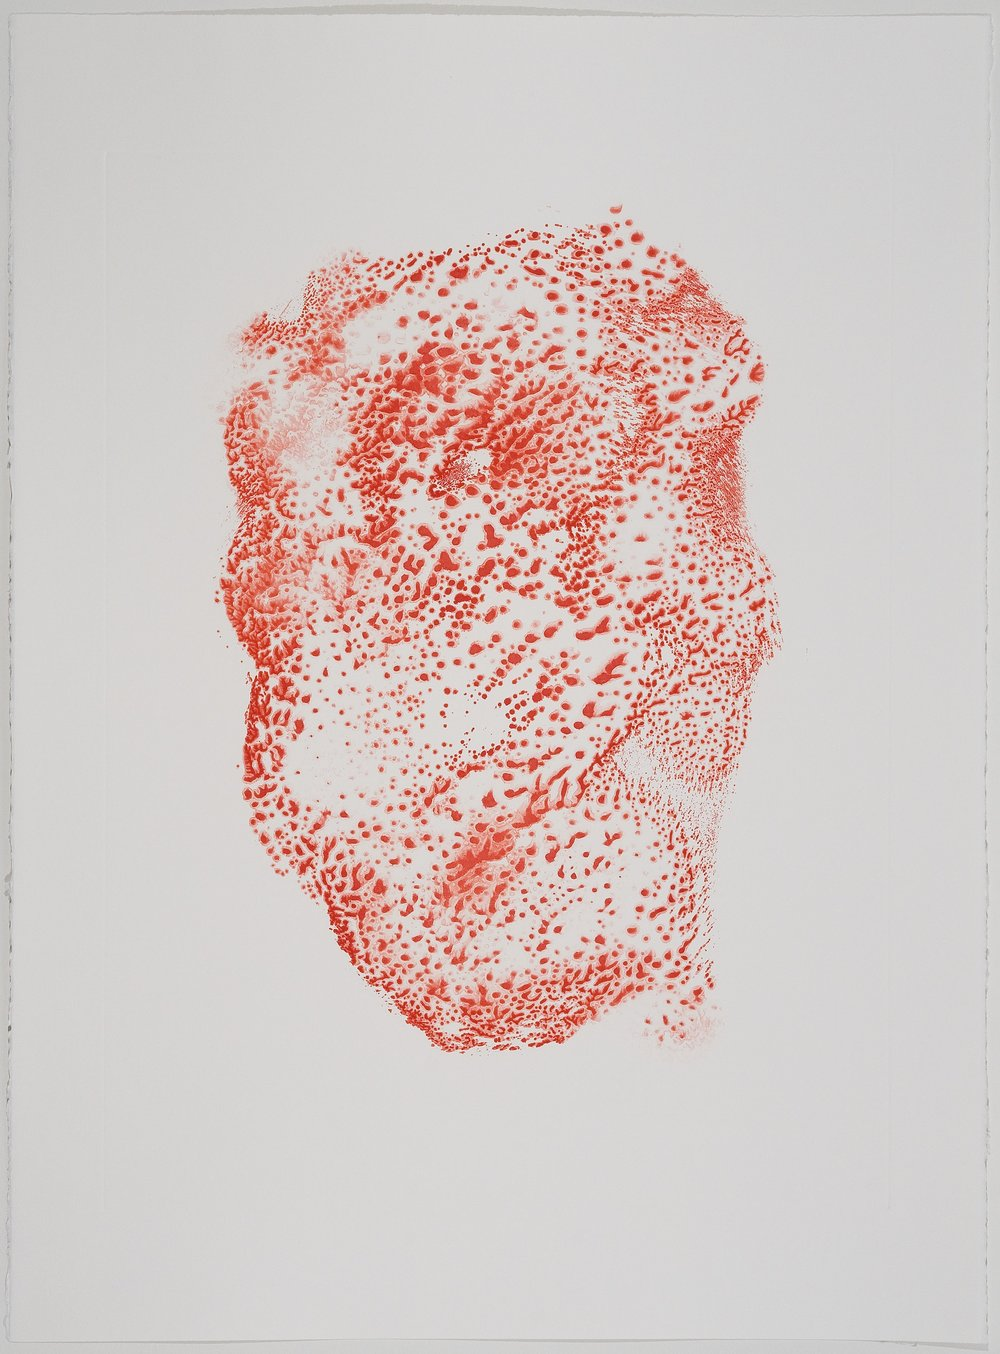 Untitled (I) , 2010 Monotype Image Size: 18 x 26 inches Paper Size: 22 x 30 inches Series of 6